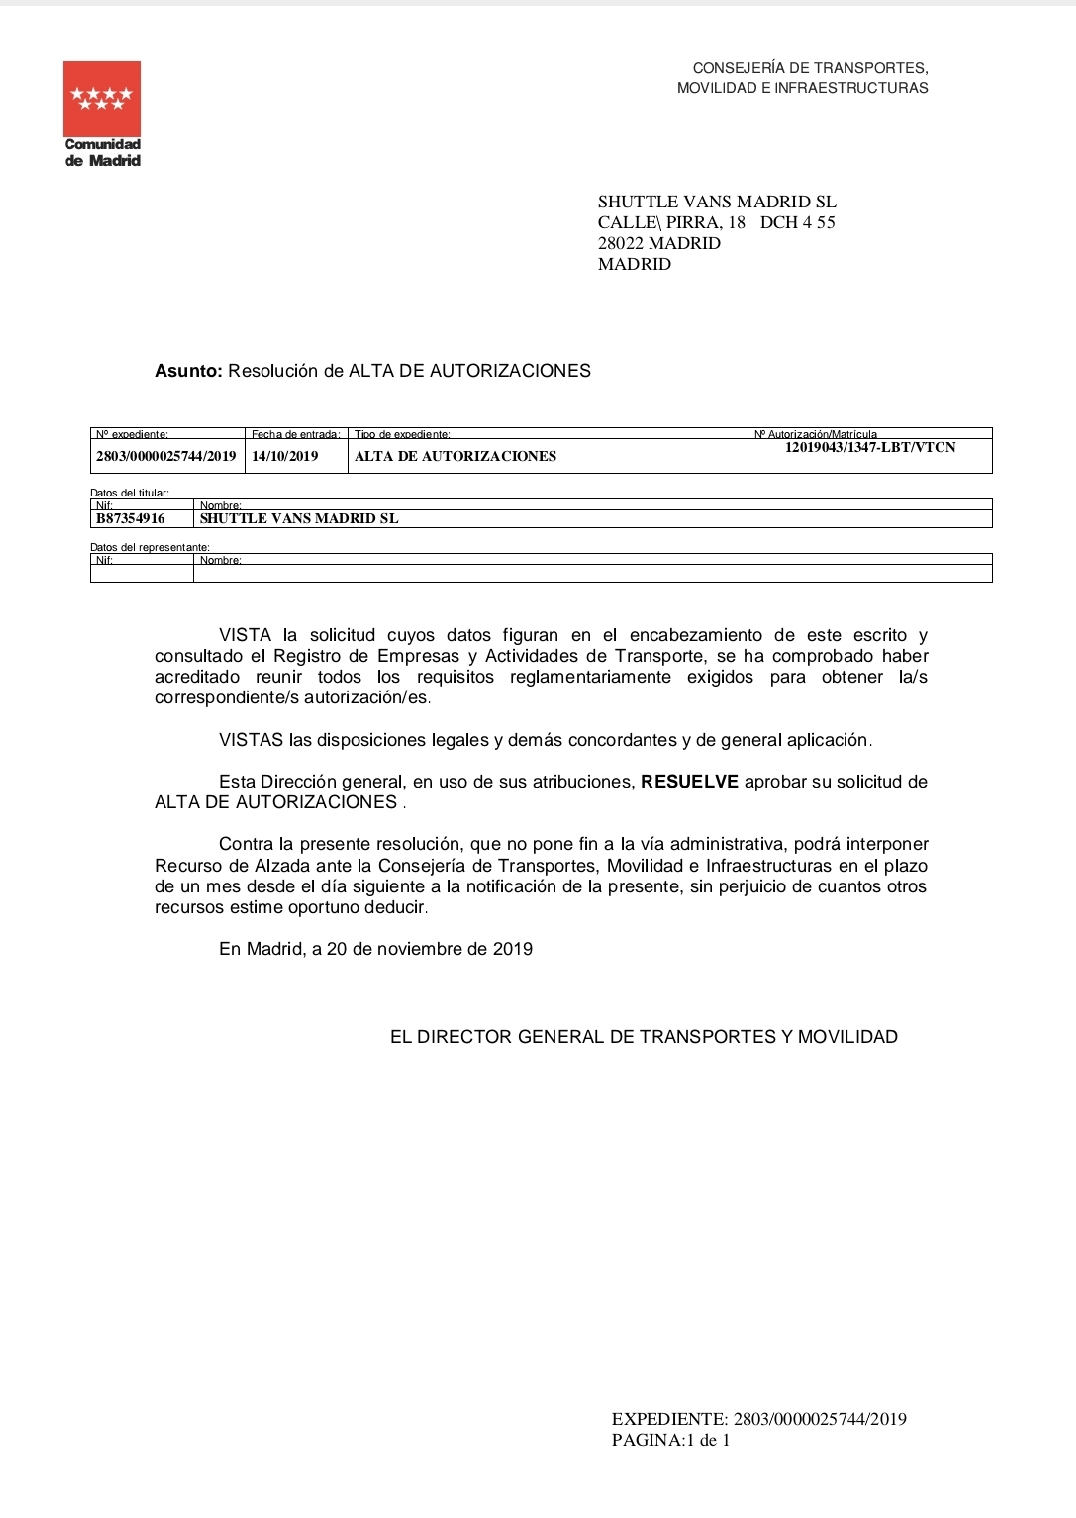 ComforTransfer transport licence